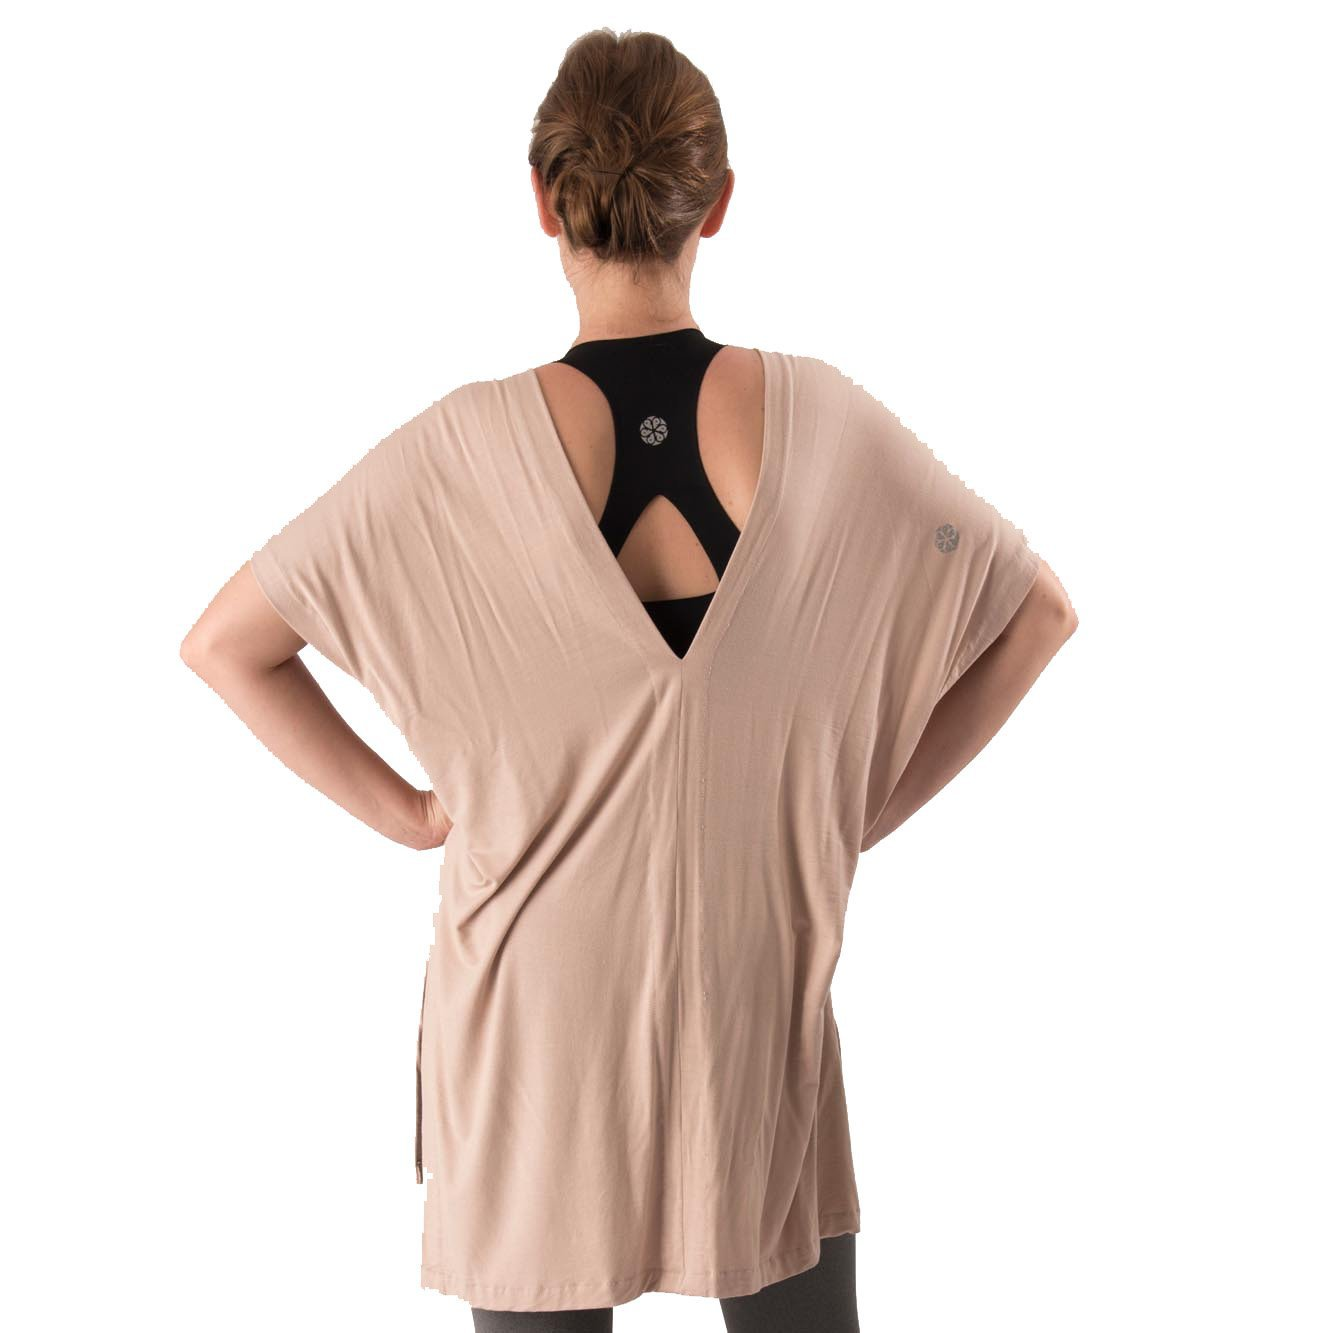 Empathy Blusa - Uranta Mindful Clothing